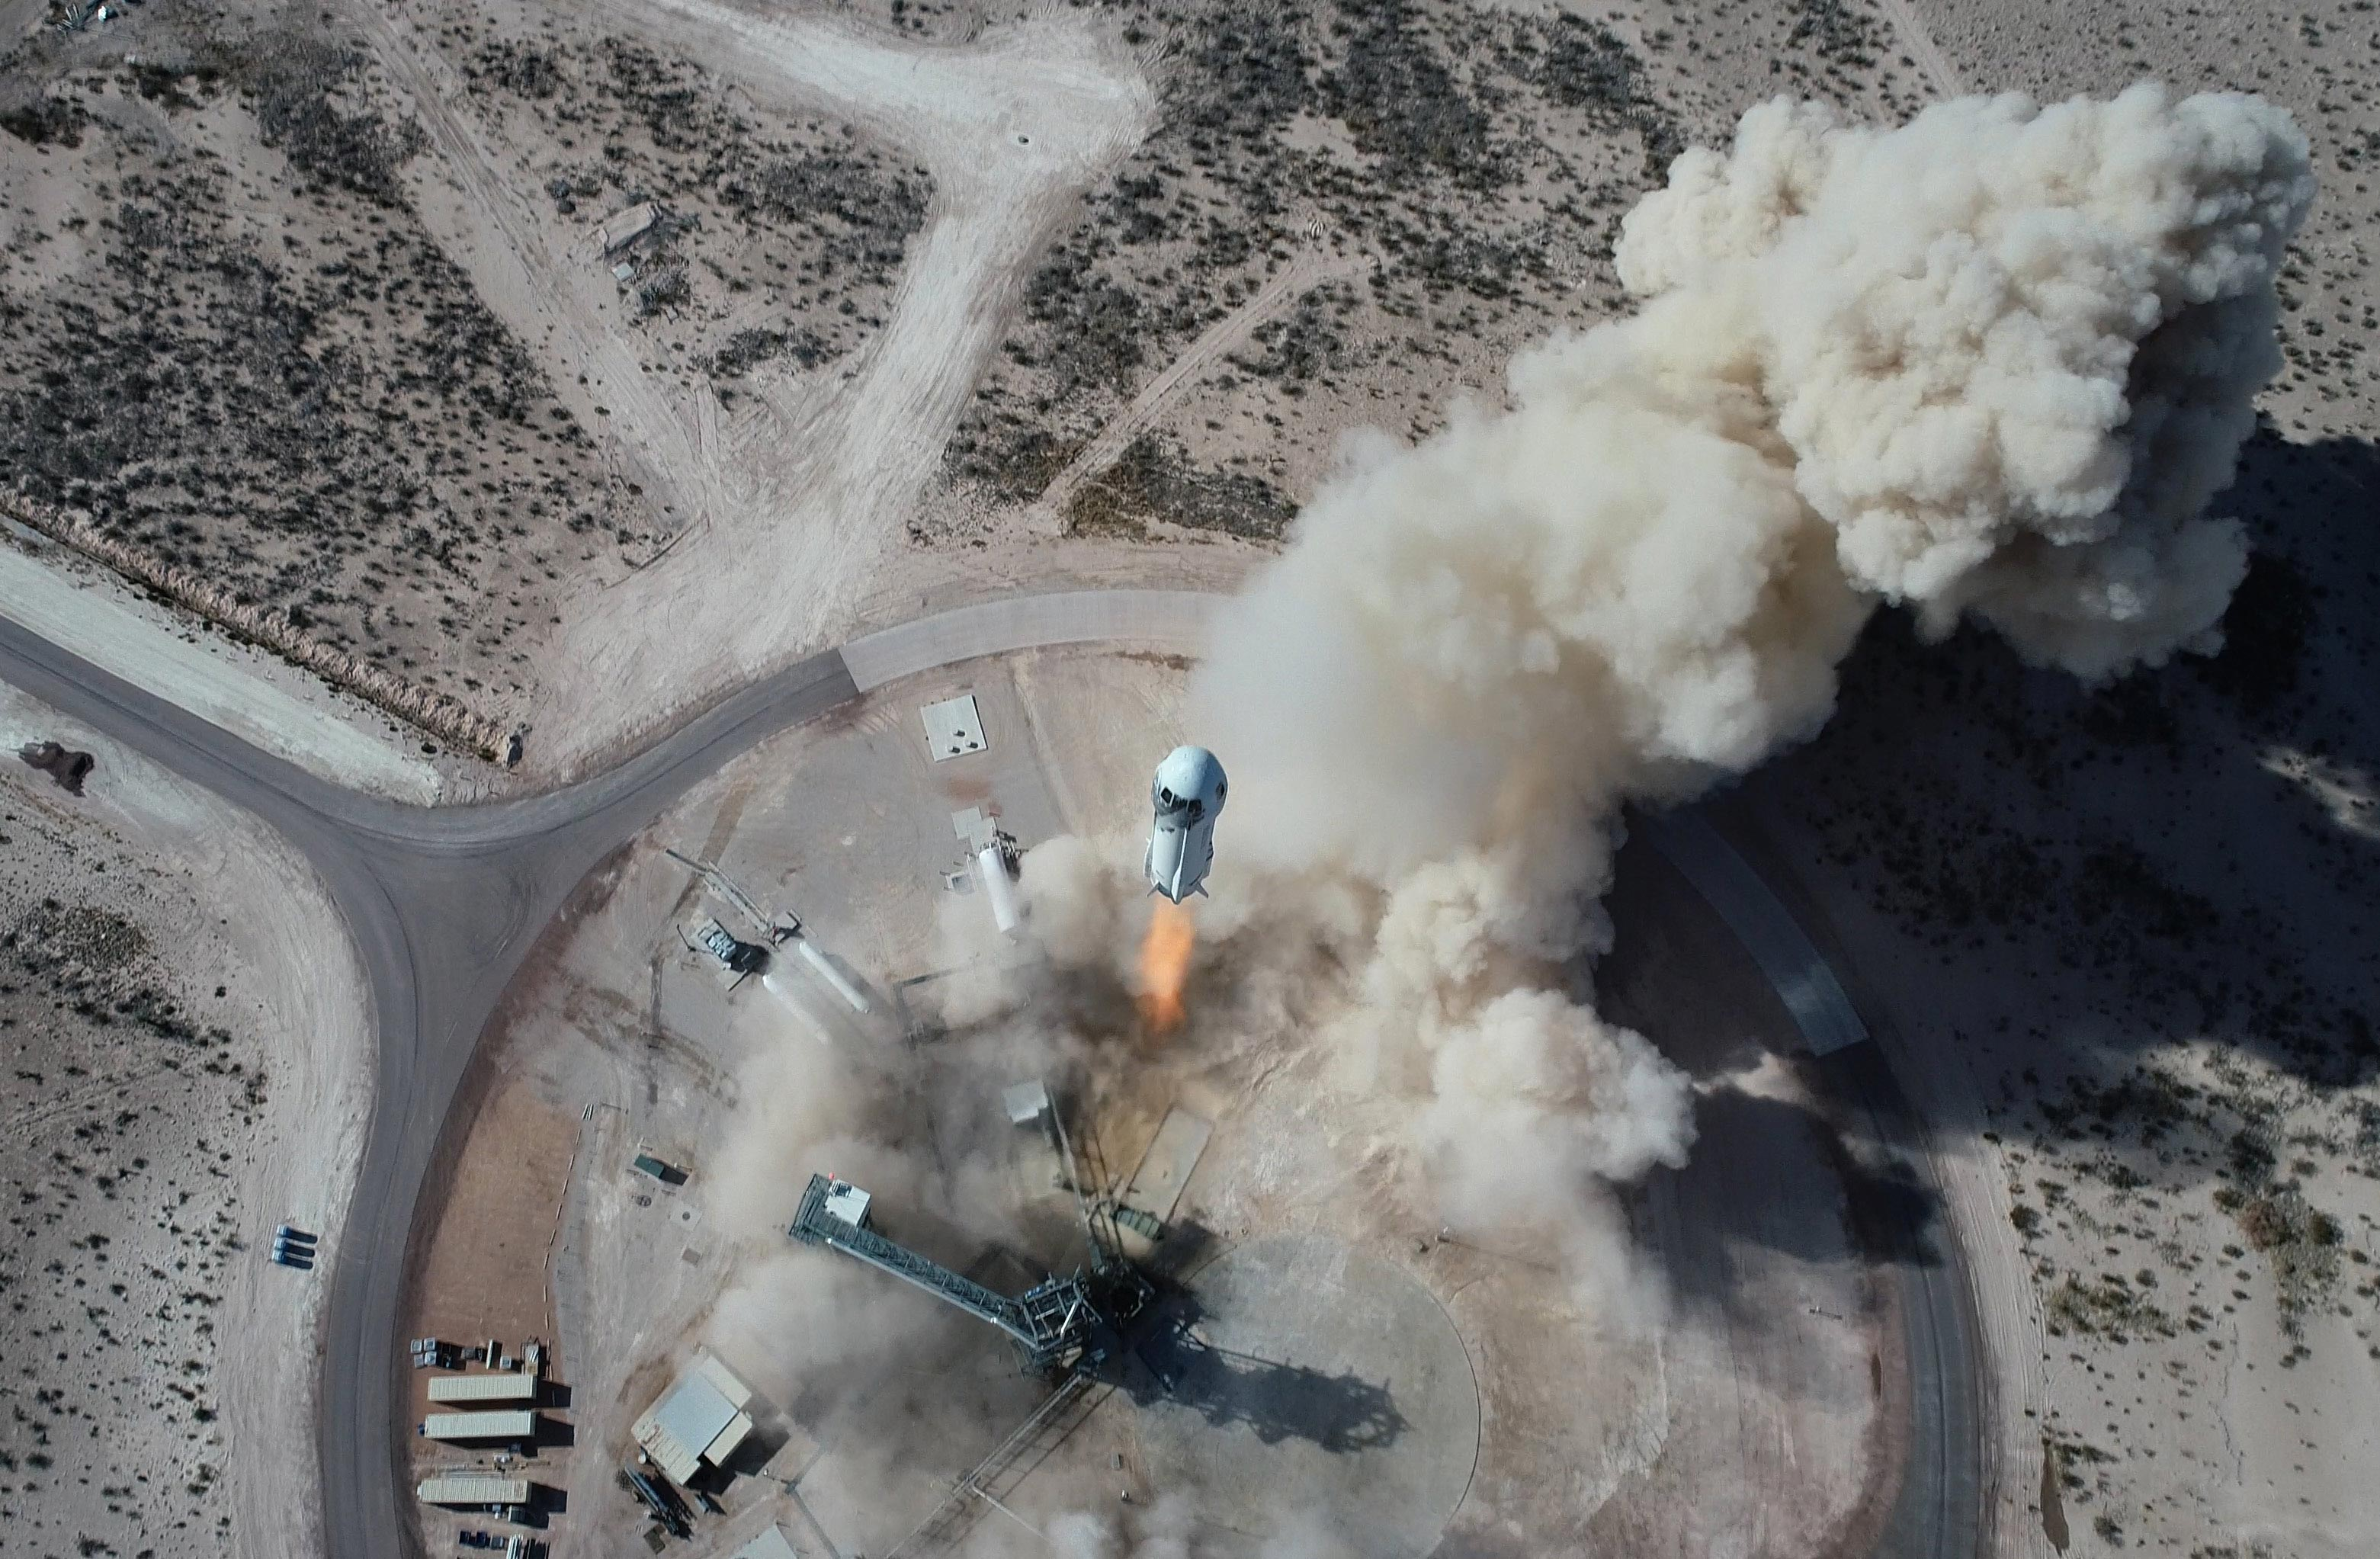 Launch of New Sheppard pictured from above, the rocket central with a large flame